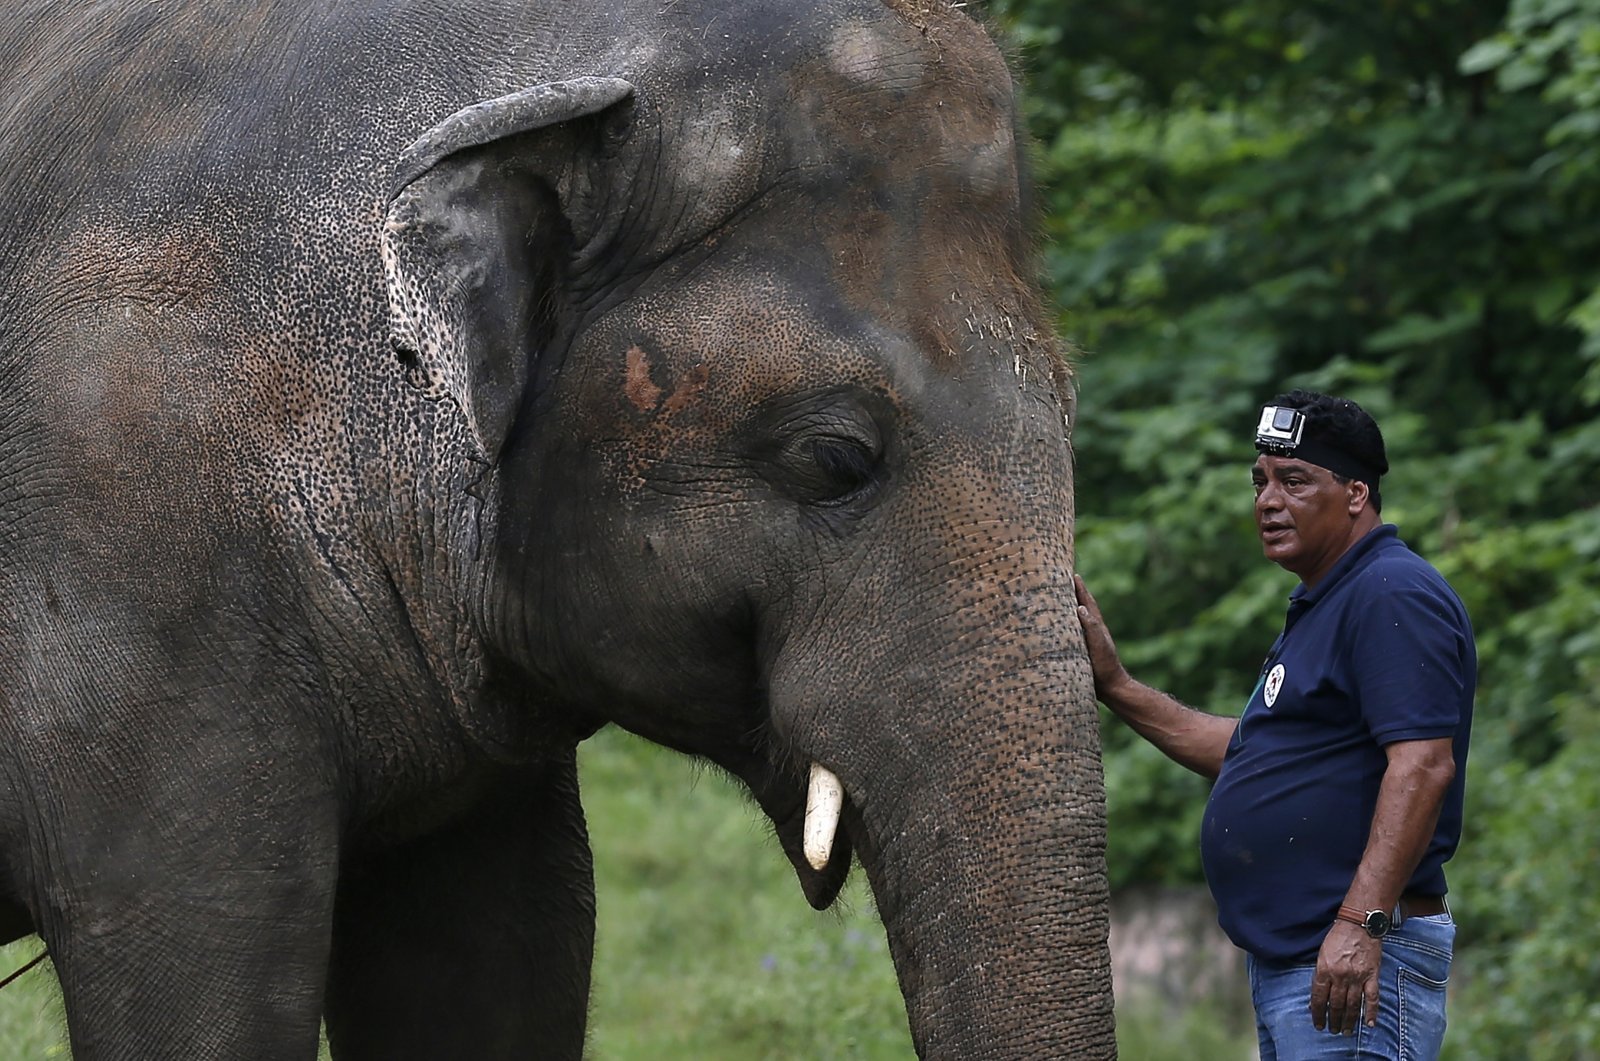 """A veterinary from the international animal welfare organization """"Four Paws"""" offers comfort to an elephant named """"Kaavan"""" during his examination at the Maragzar Zoo in Islamabad, Pakistan, Sept. 4, 2020. (AP Photo/Anjum Naveed)"""